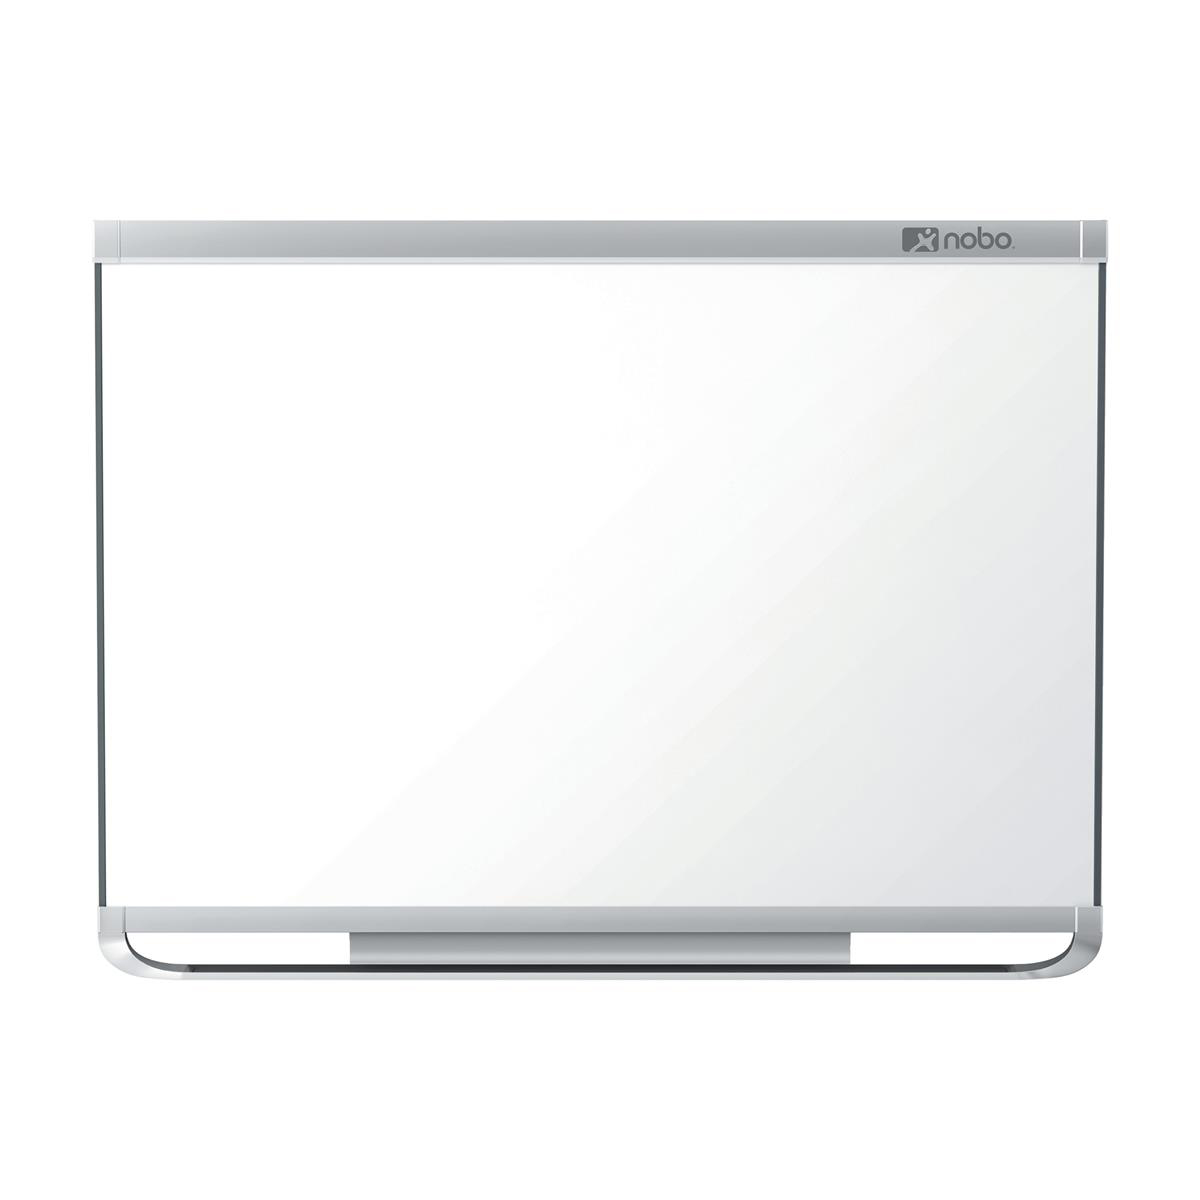 Nobo Prestige Enamel Whiteboard Connex Magnetic Fixings Included W1800xH1200mm White Ref 1902676